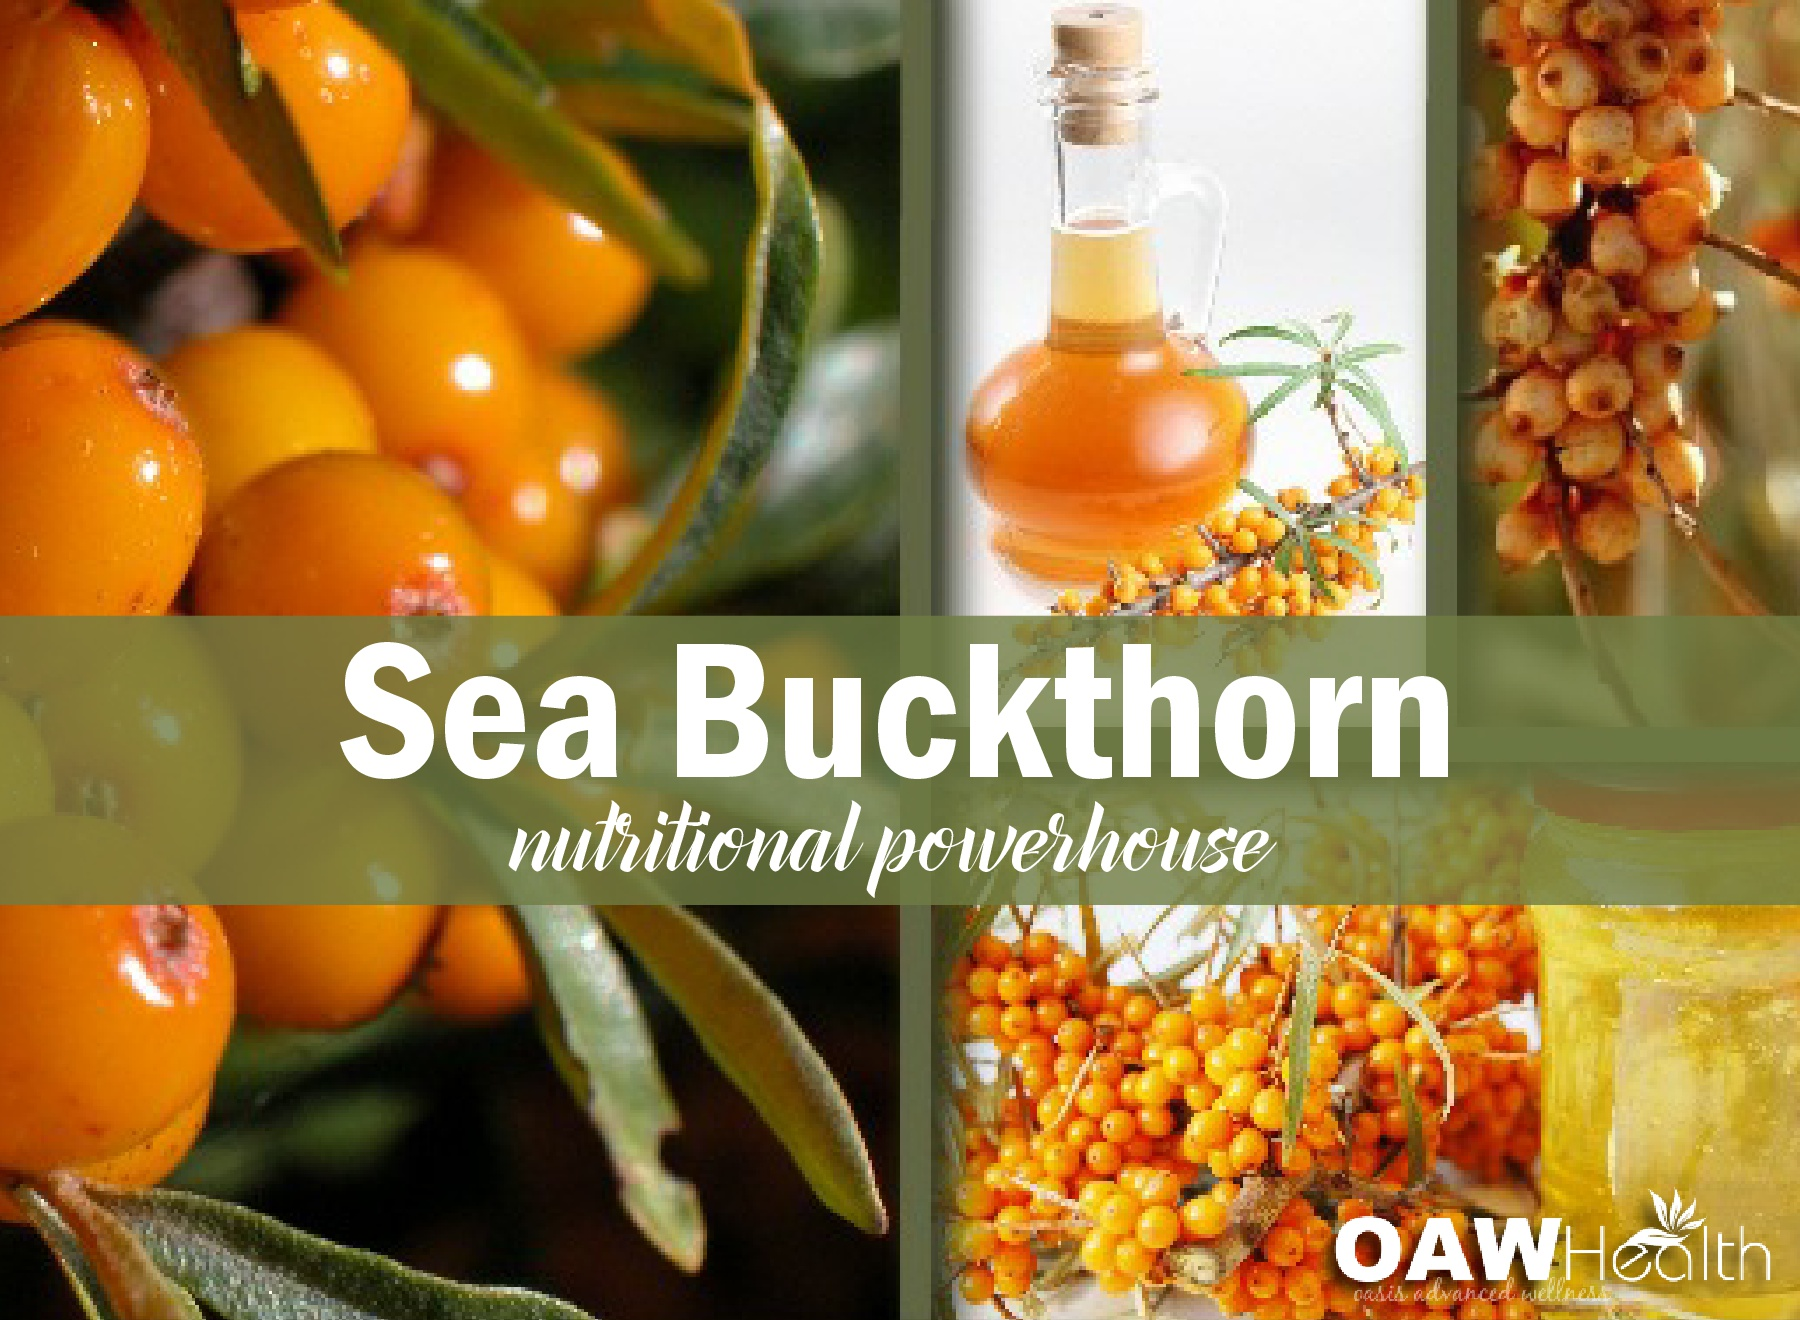 Sea Buckthorn Oil – A Nutritional Powerhouse